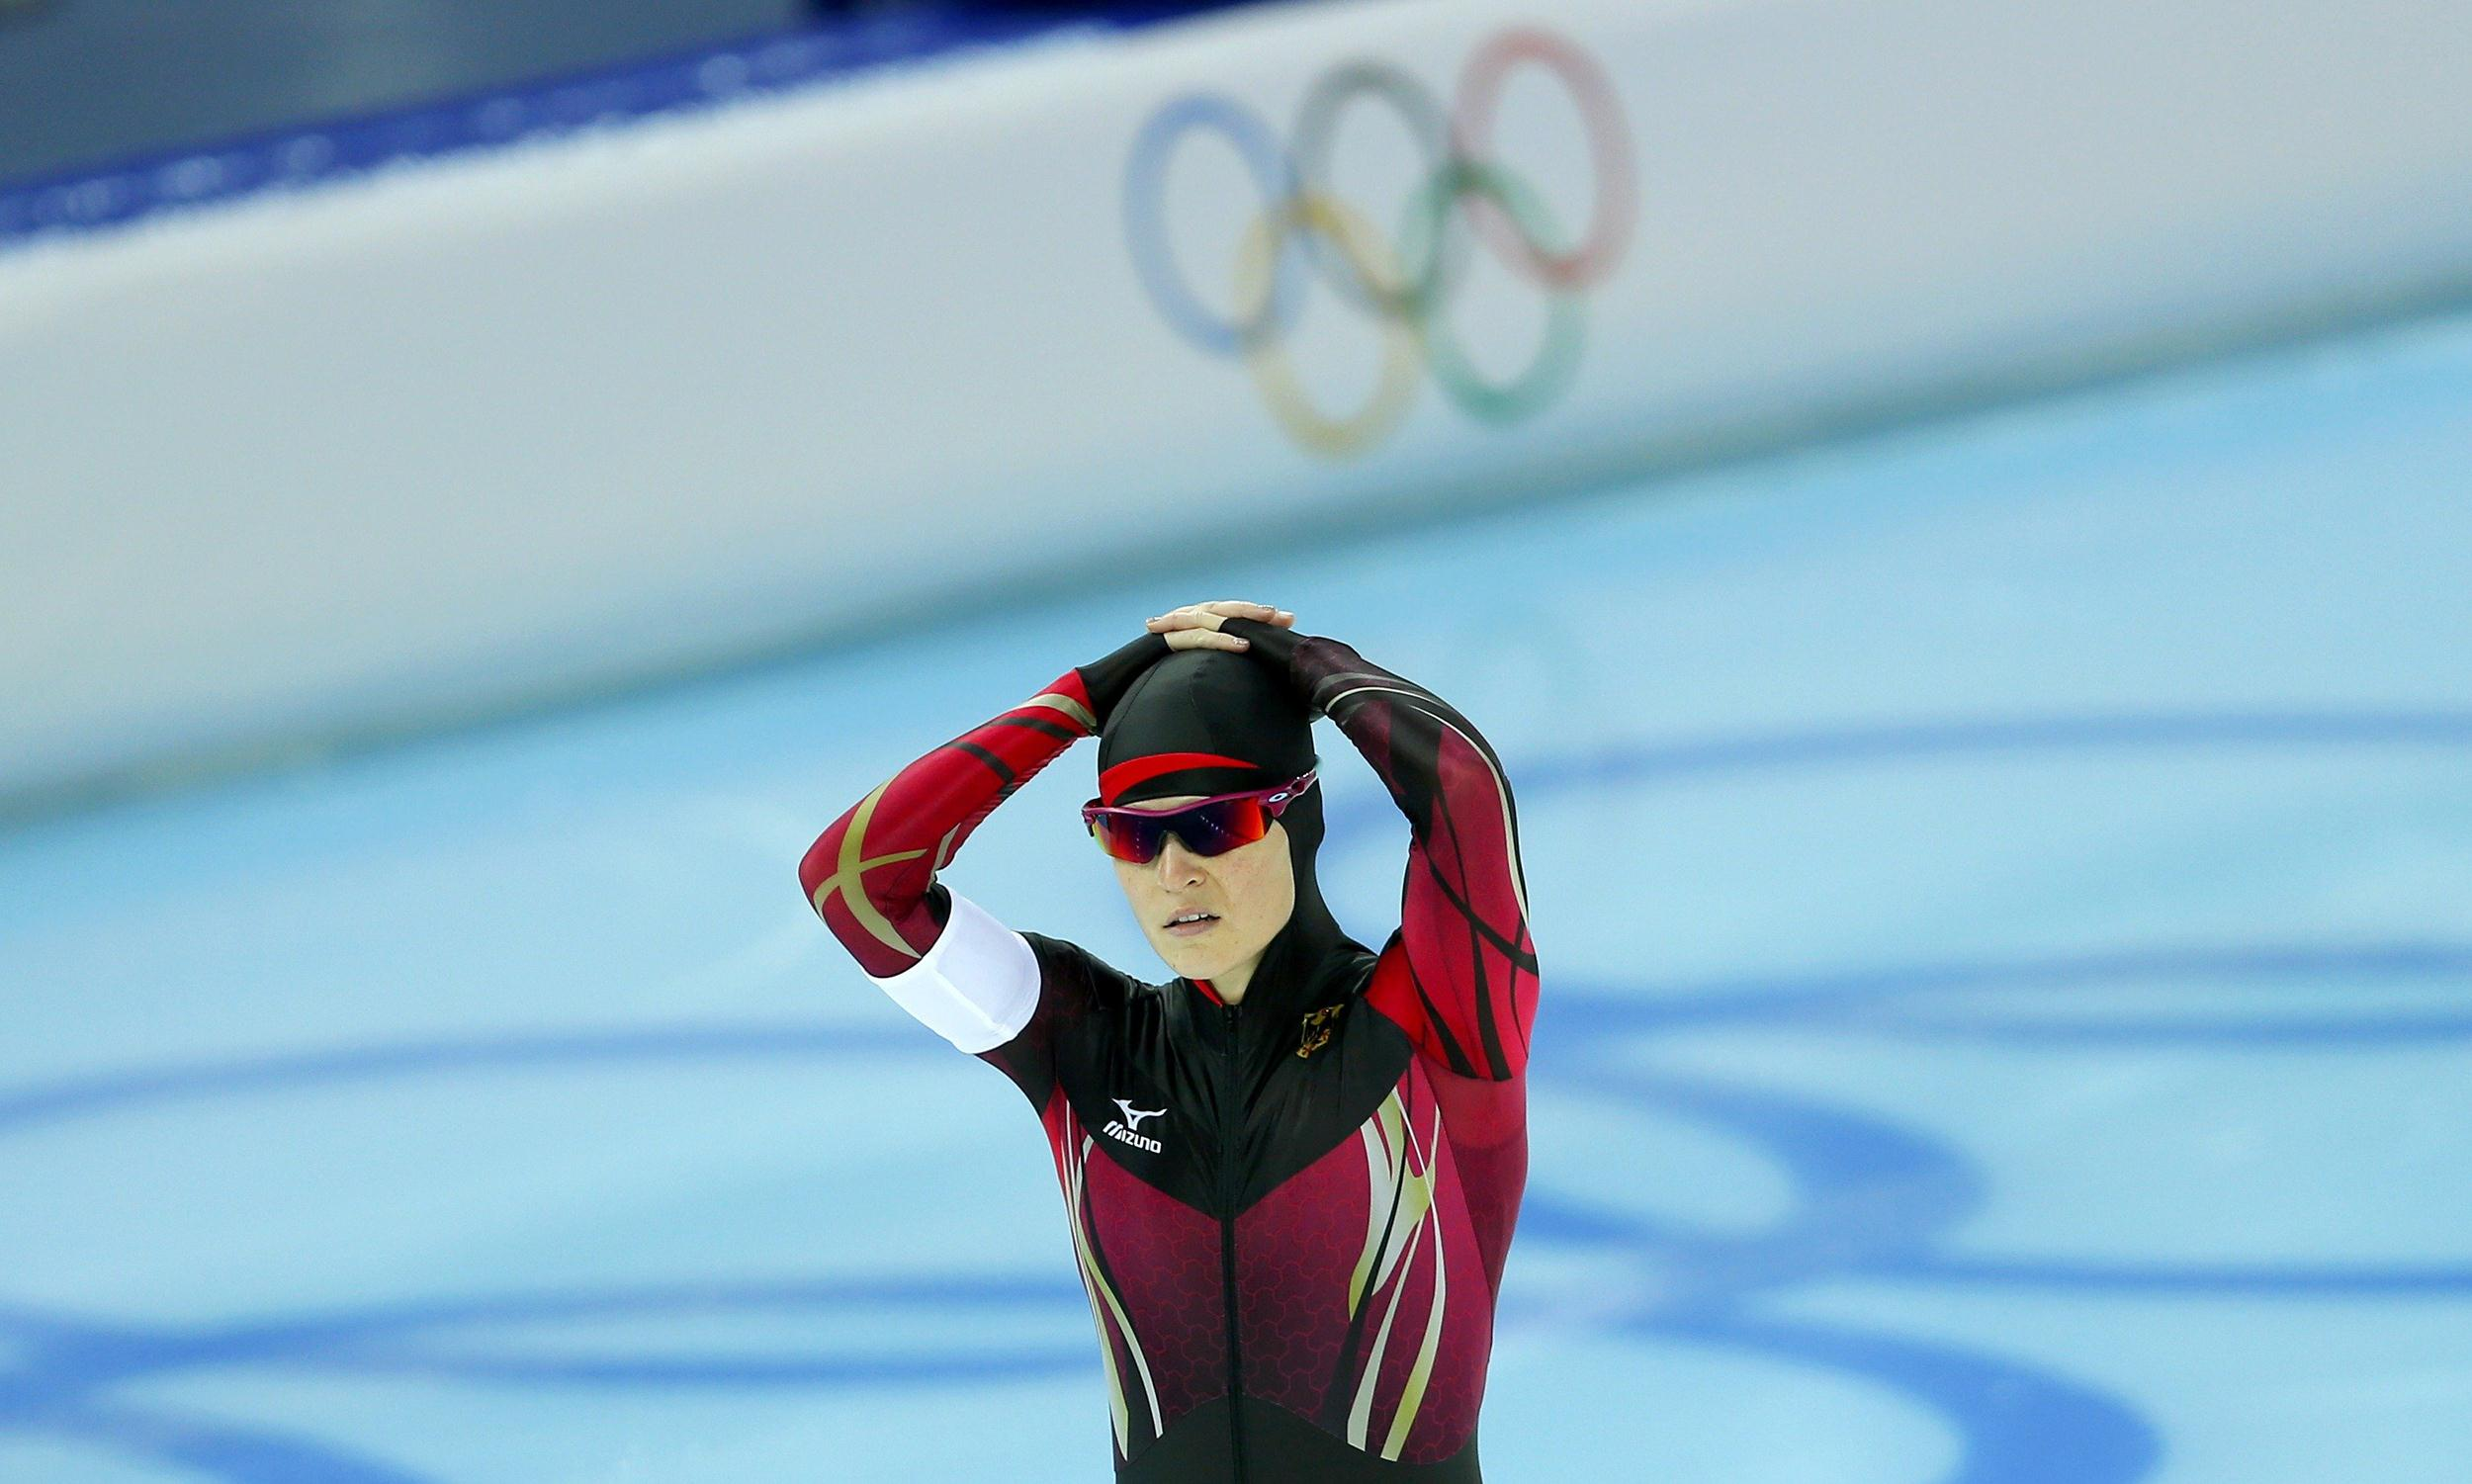 Image: Judith Hesse of Germany reacts after being disqualified for a second false start in race one of the women's 500 meters speed skating event during the 2014 Sochi Winter Olympics